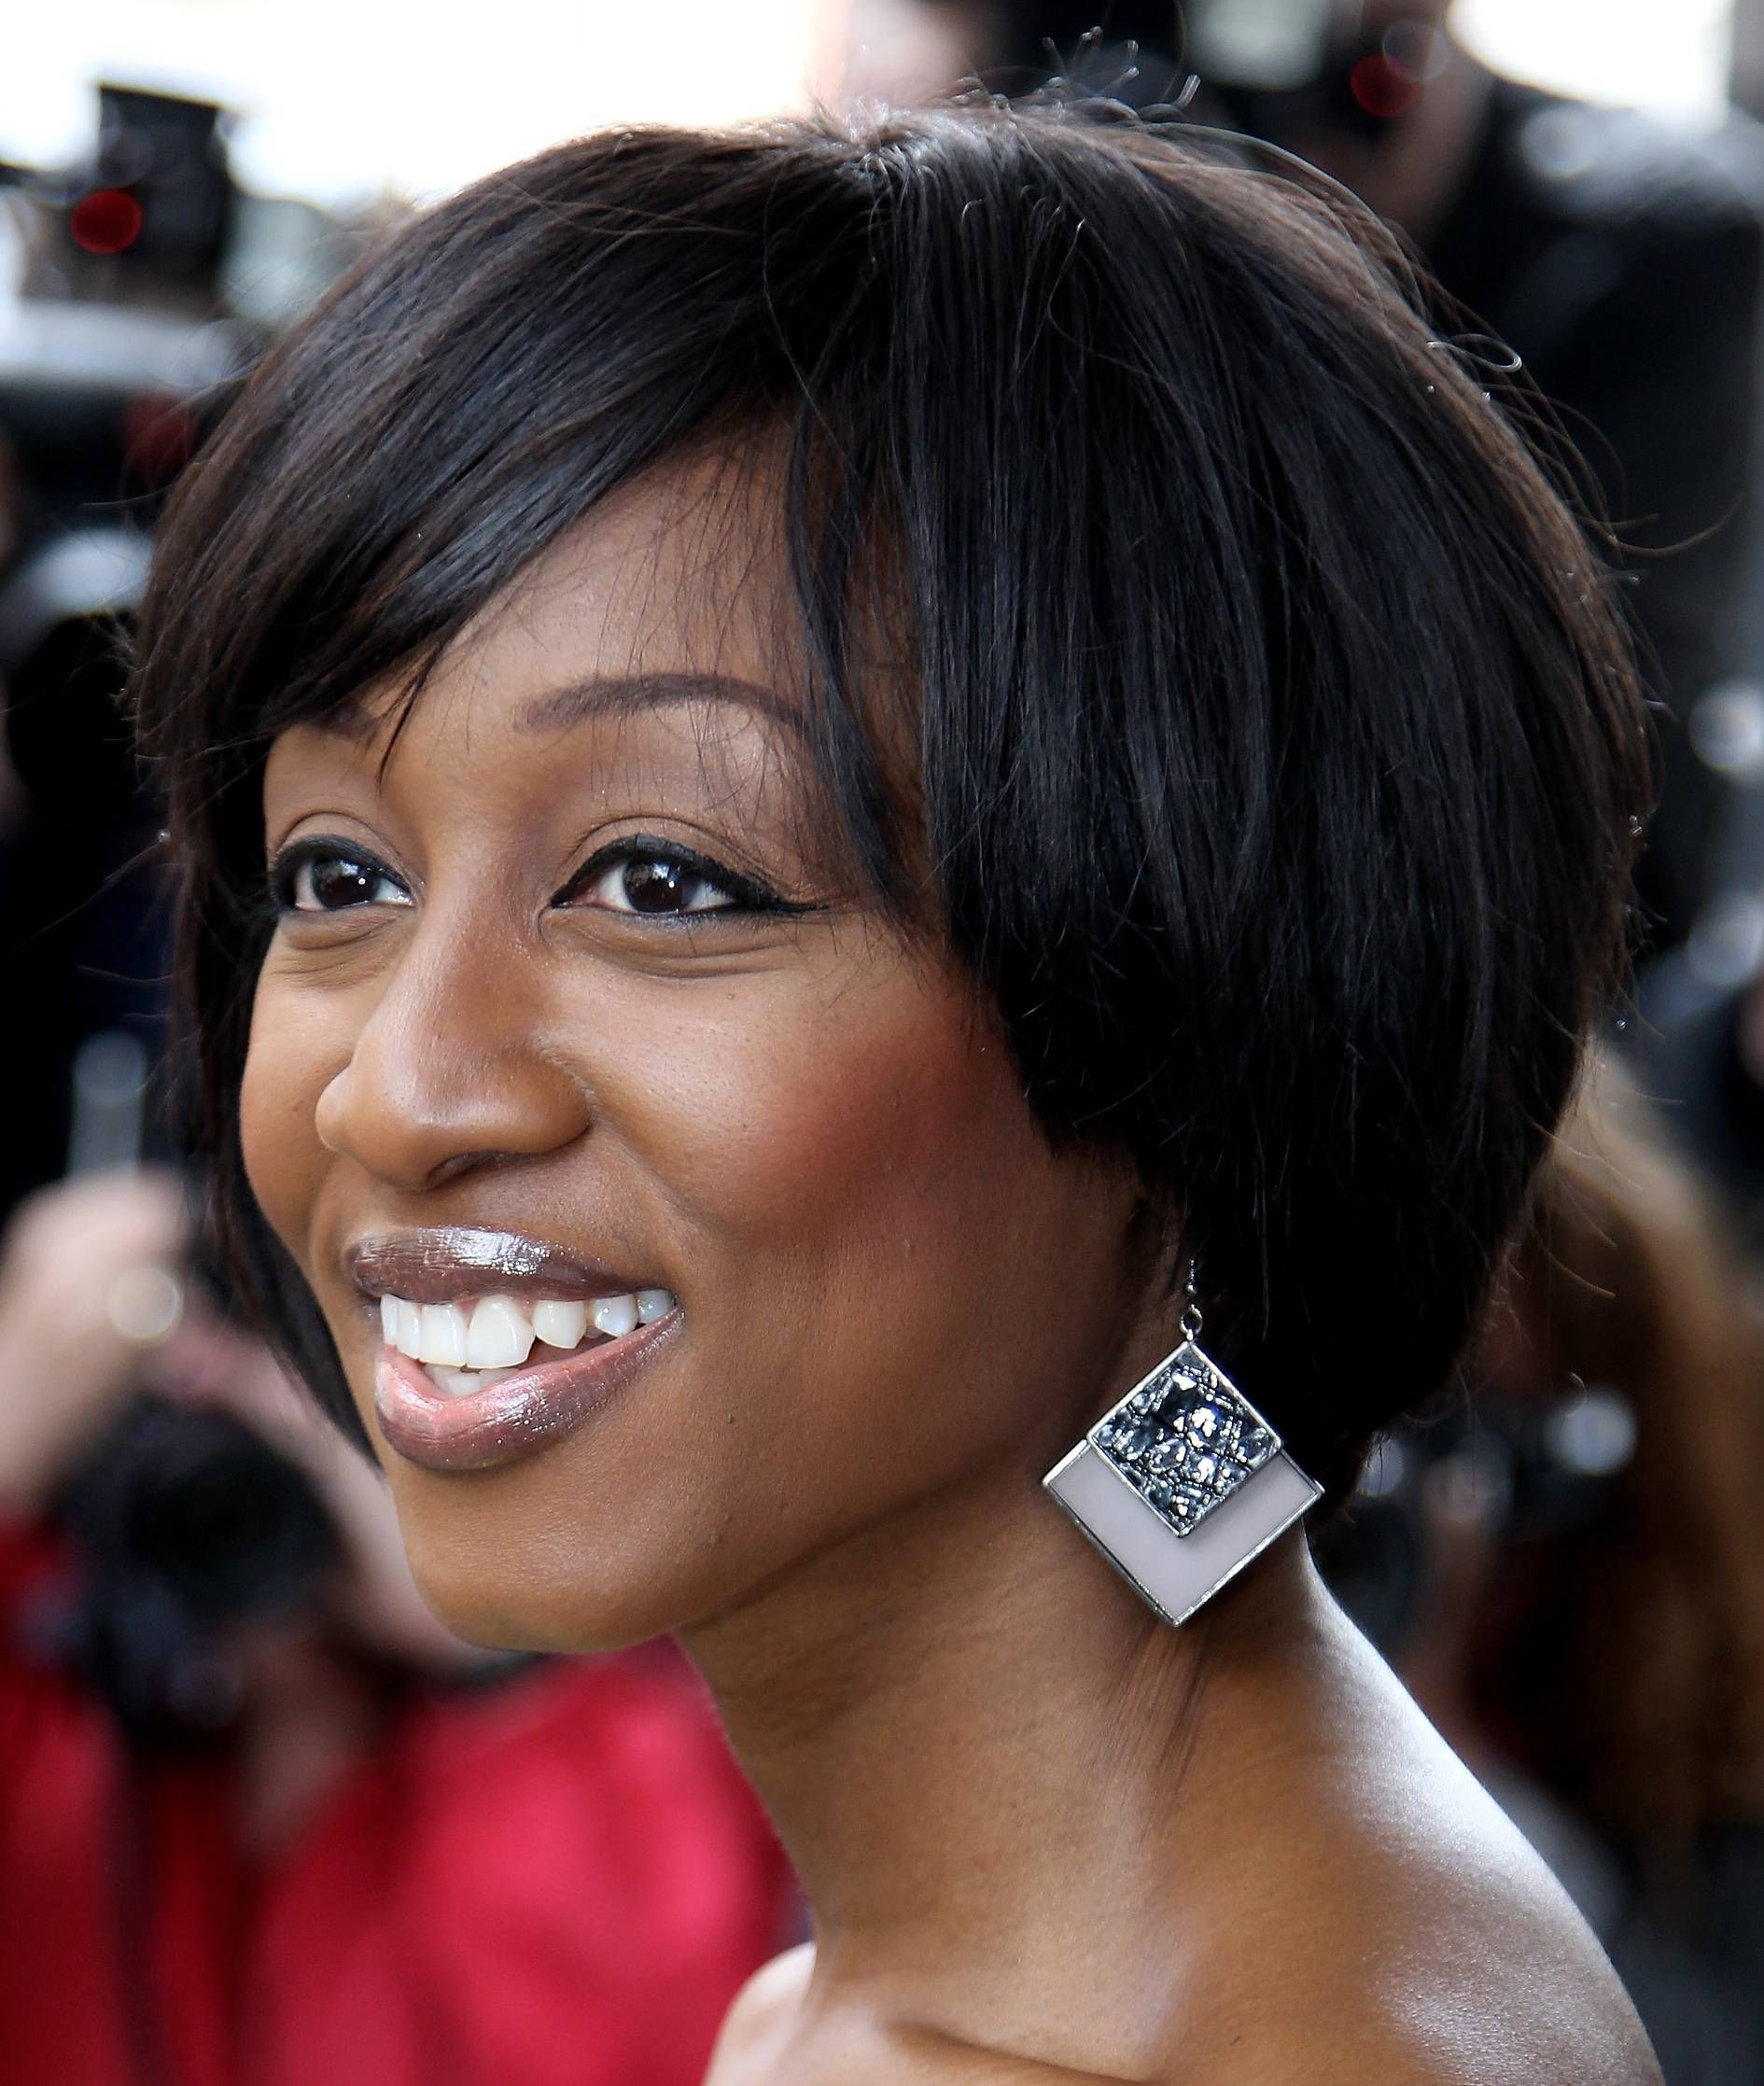 Remarkable 1000 Images About Hair Styles On Pinterest Jada Pinkett Smith Hairstyle Inspiration Daily Dogsangcom